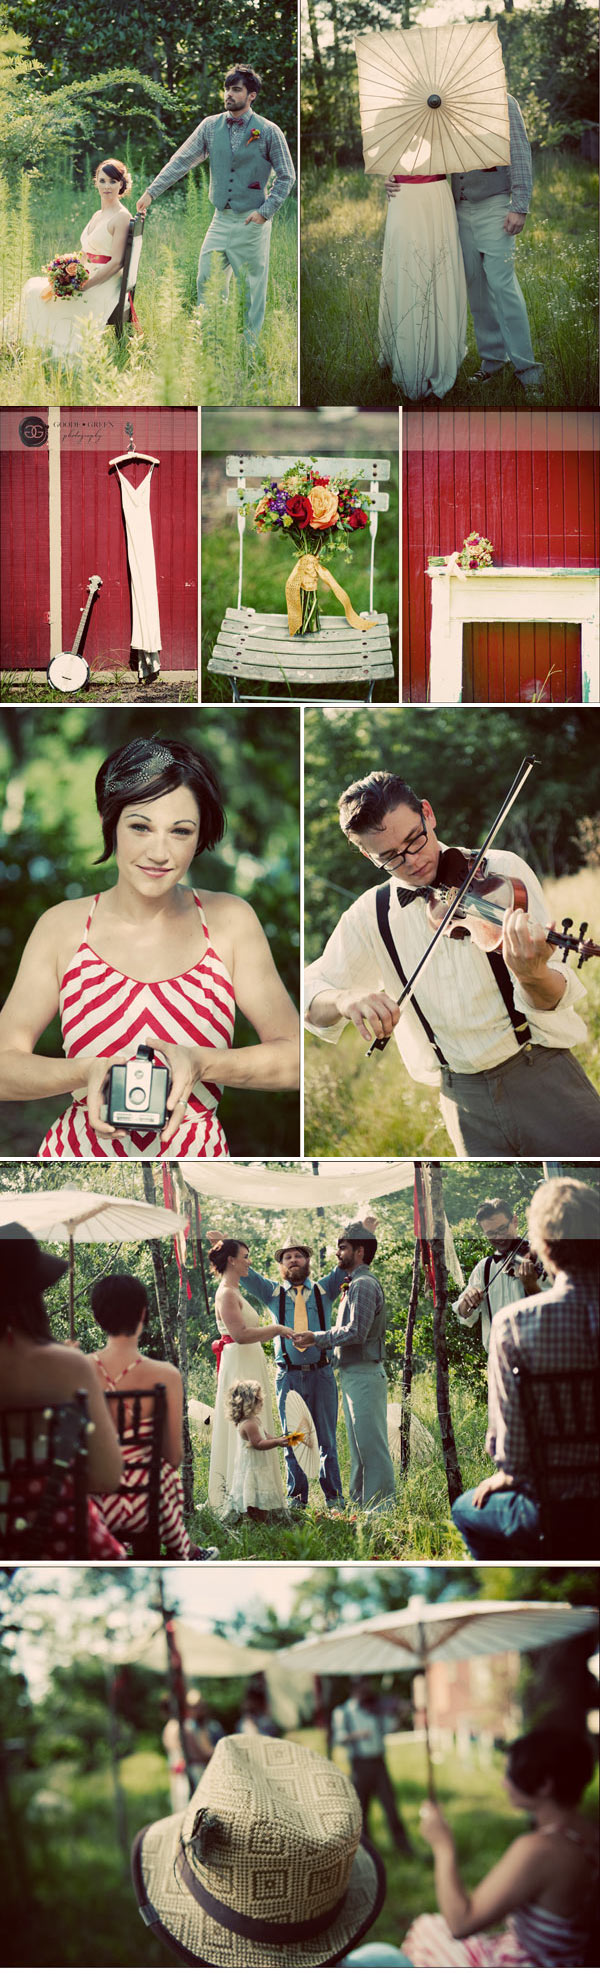 Goes along with our southern vintage theme romance pinterest